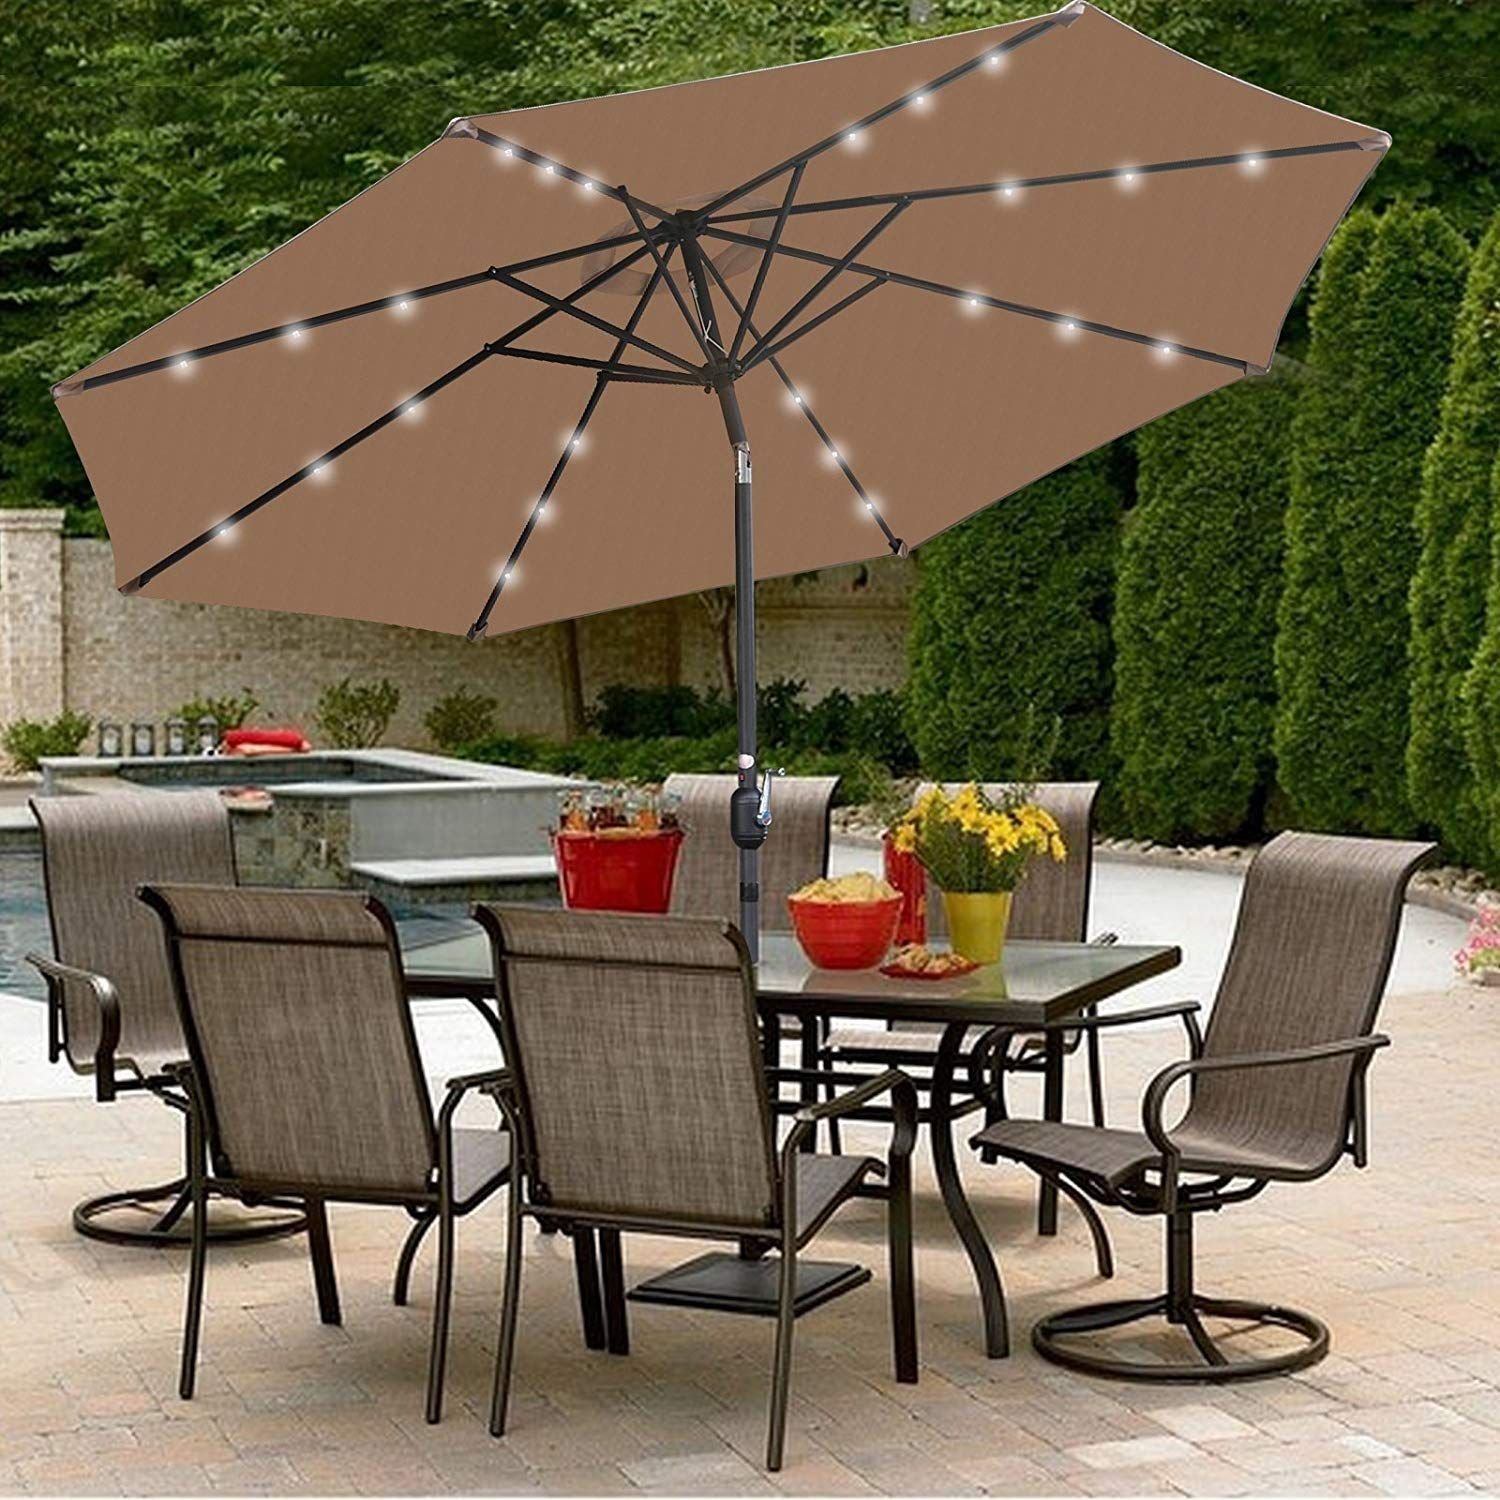 Stay Covered Under This Super Deal 10ft Patio Umbrella Led Solar Power Right Here Https Www A Backyard Patio Furniture Clearance Patio Furniture Patio Decor